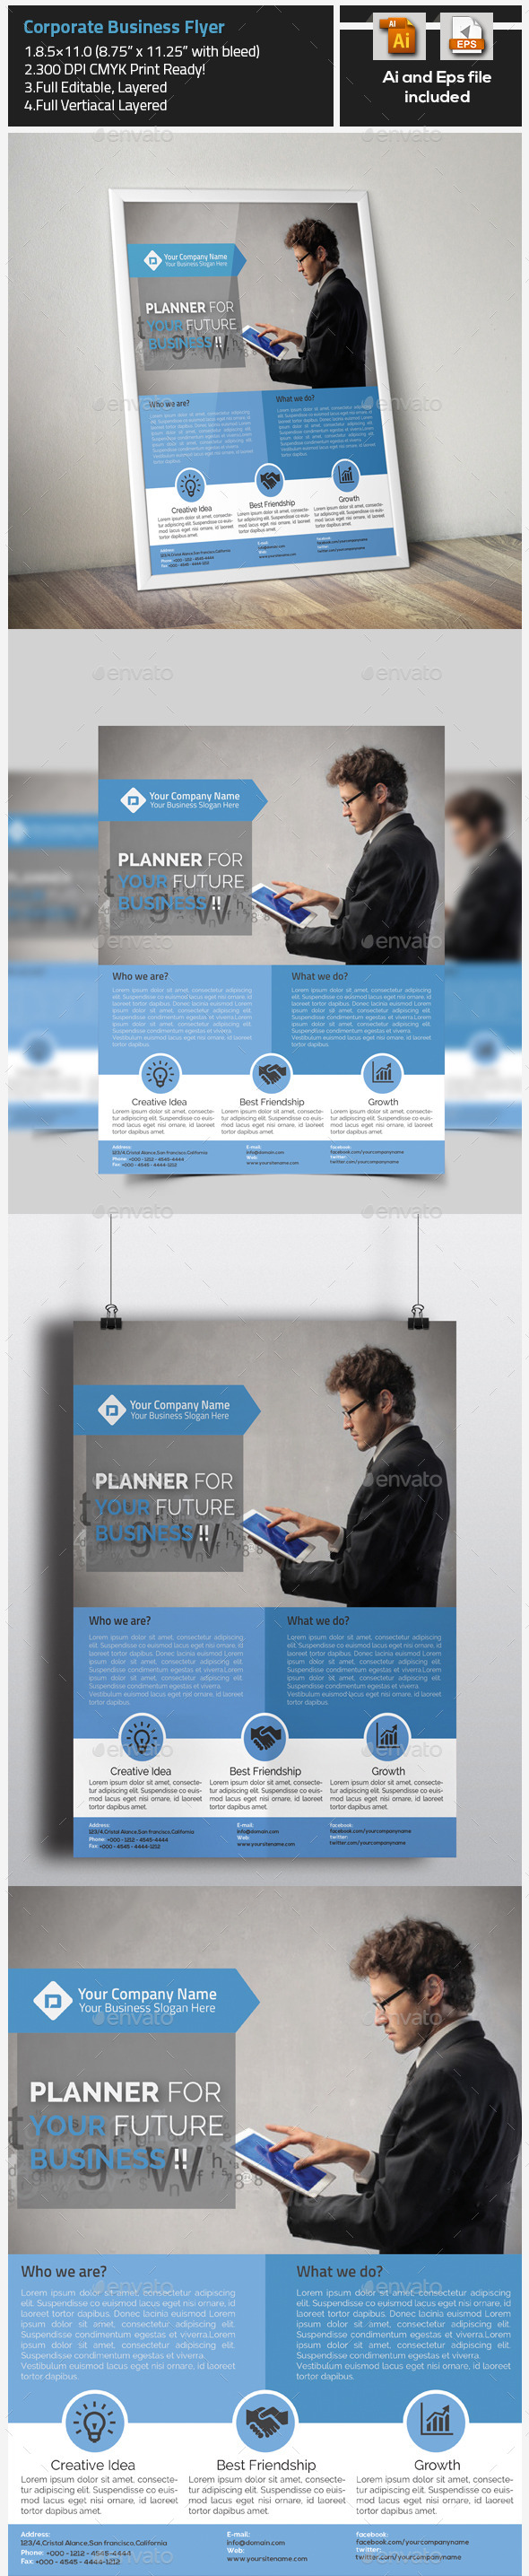 GraphicRiver Corporate Business Flyer 9722983